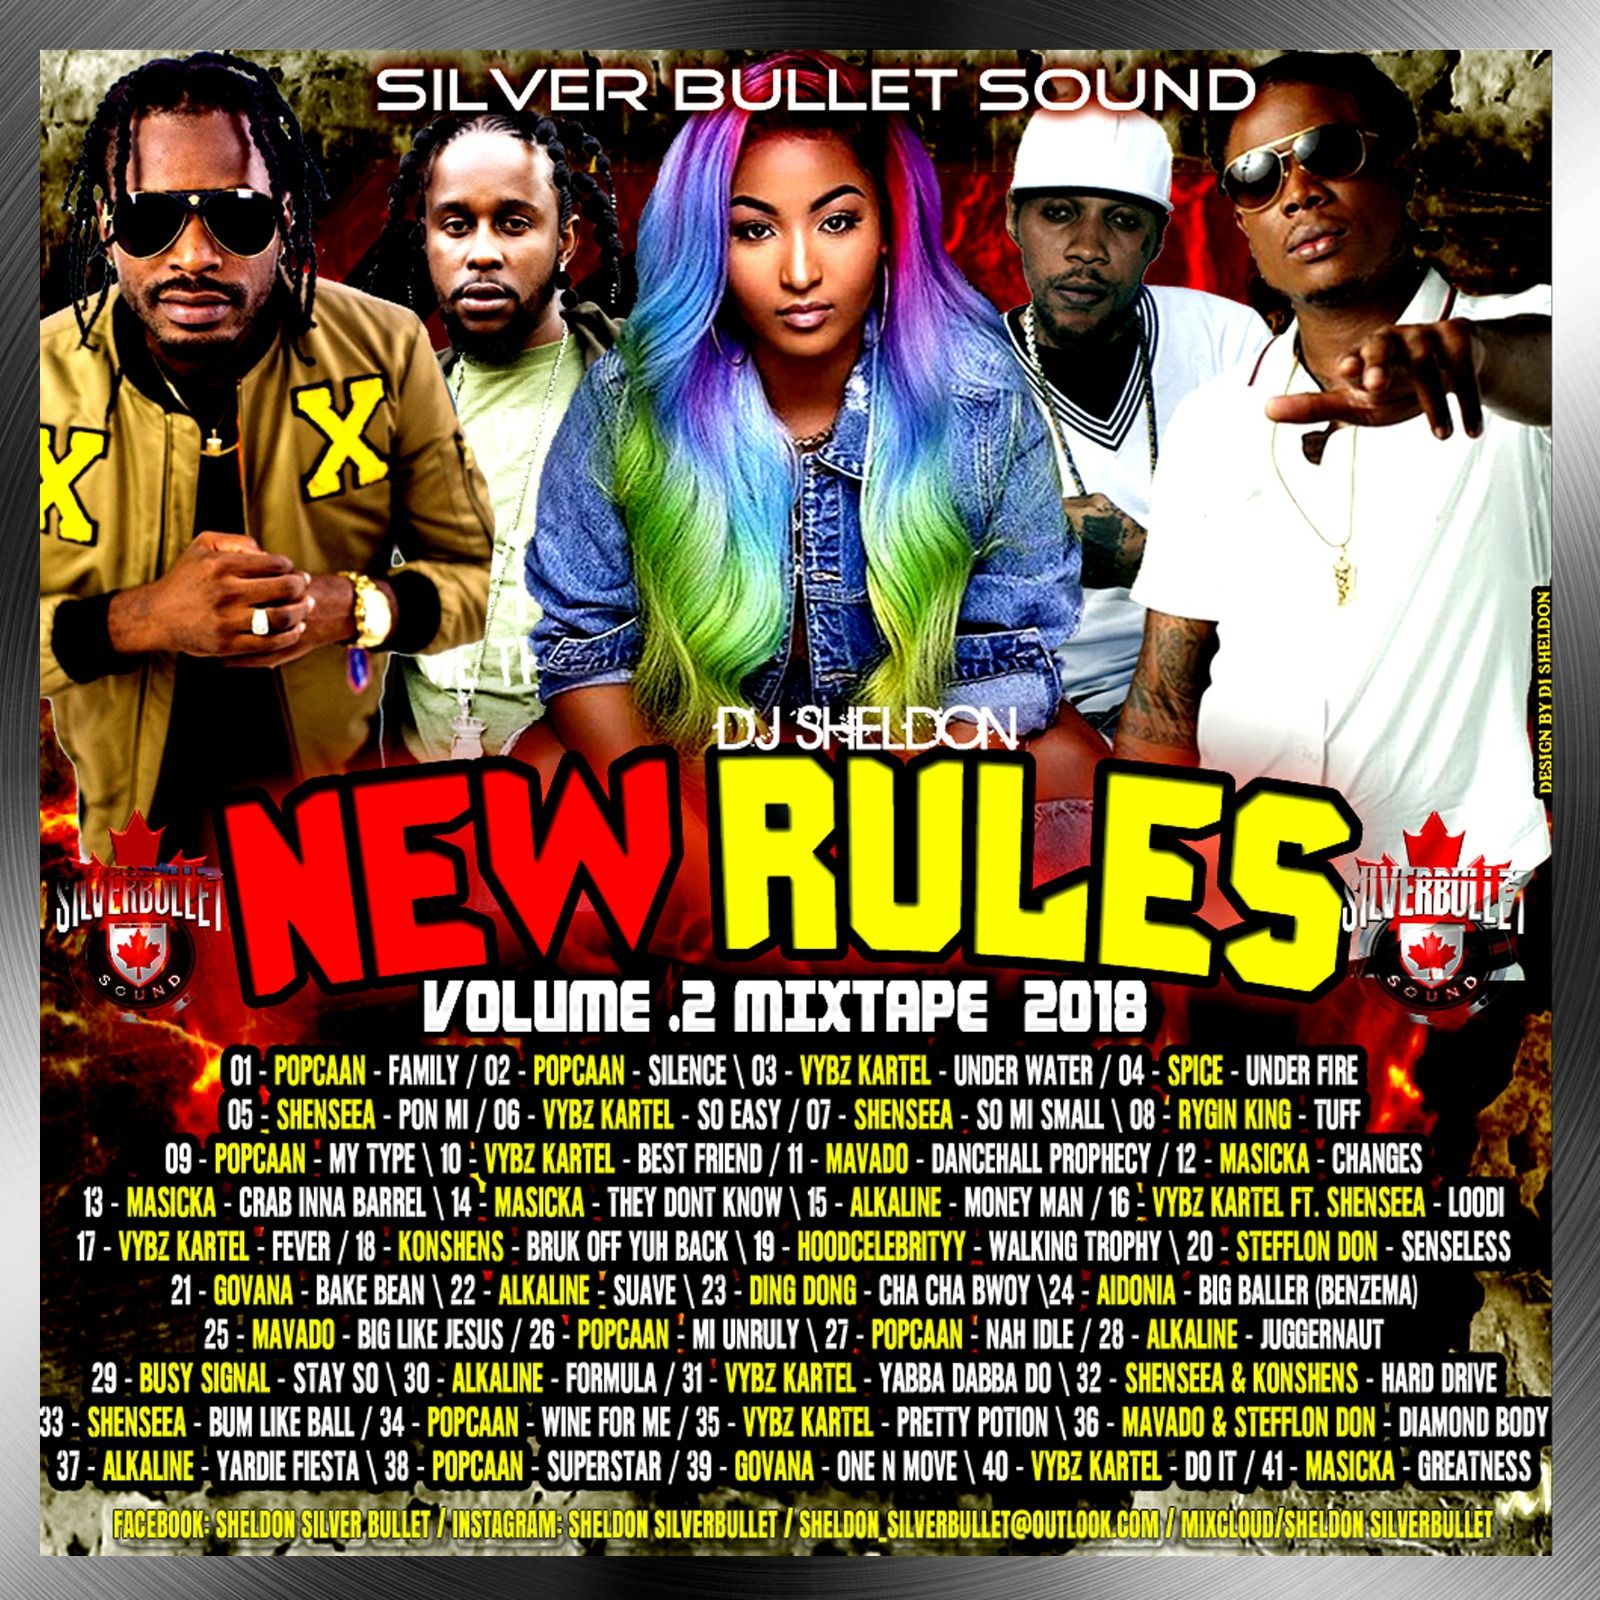 Silver Bullet Sound - New Rules Vol 2 Dancehall Mix 2018 by